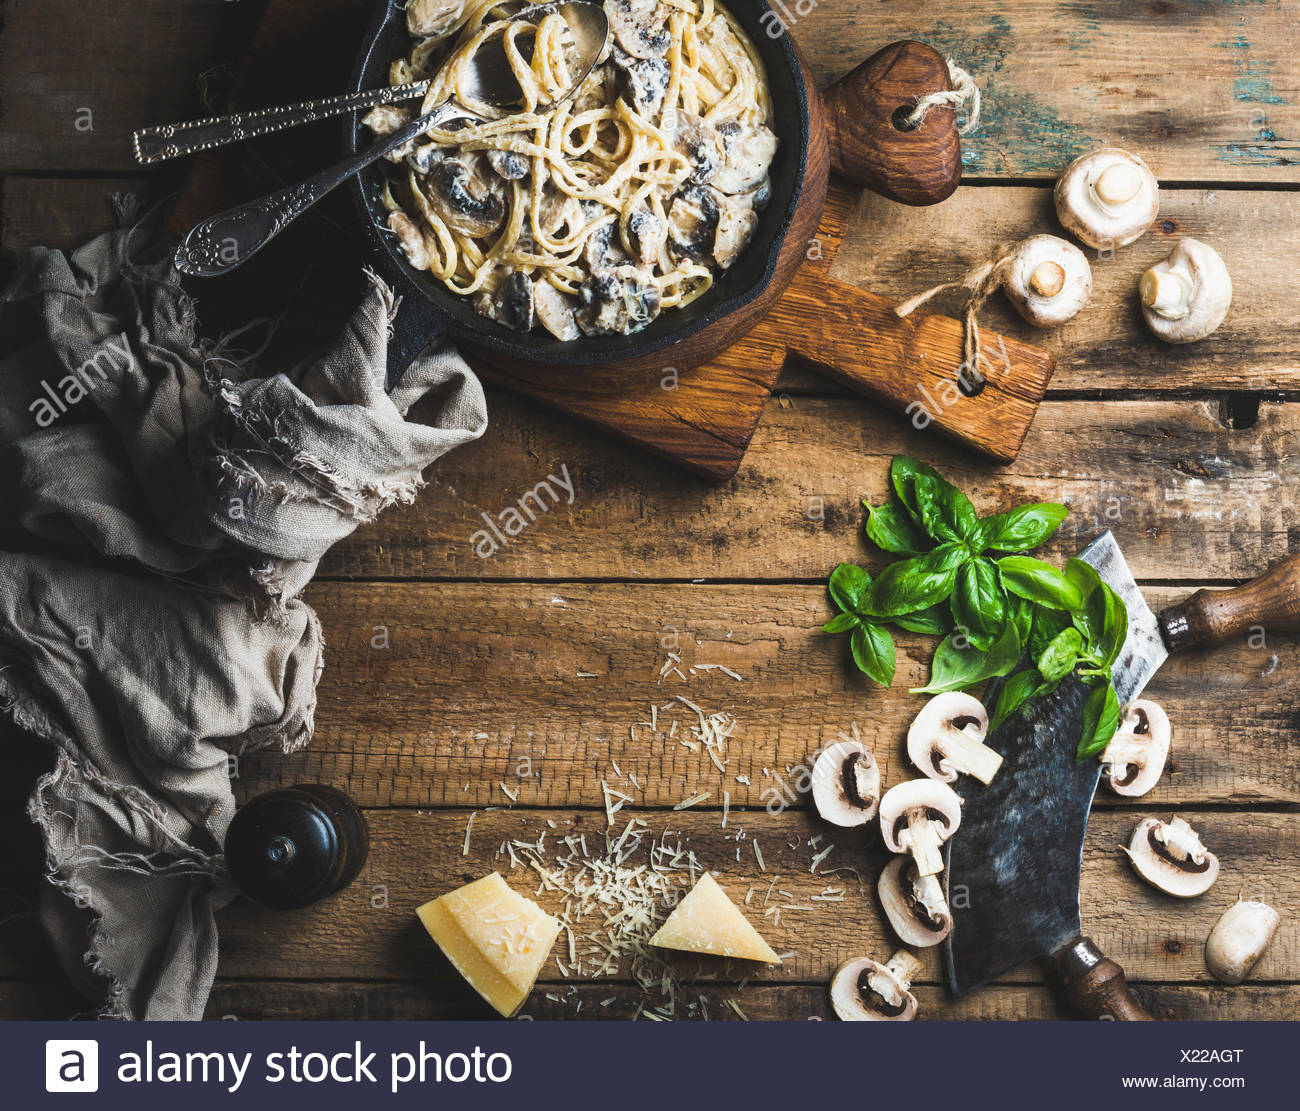 Italian style dinner with copy space. Creamy mushroom pasta spaghetti in cast iron pan with Parmesan cheese, fresh basil and pep - Stock Image